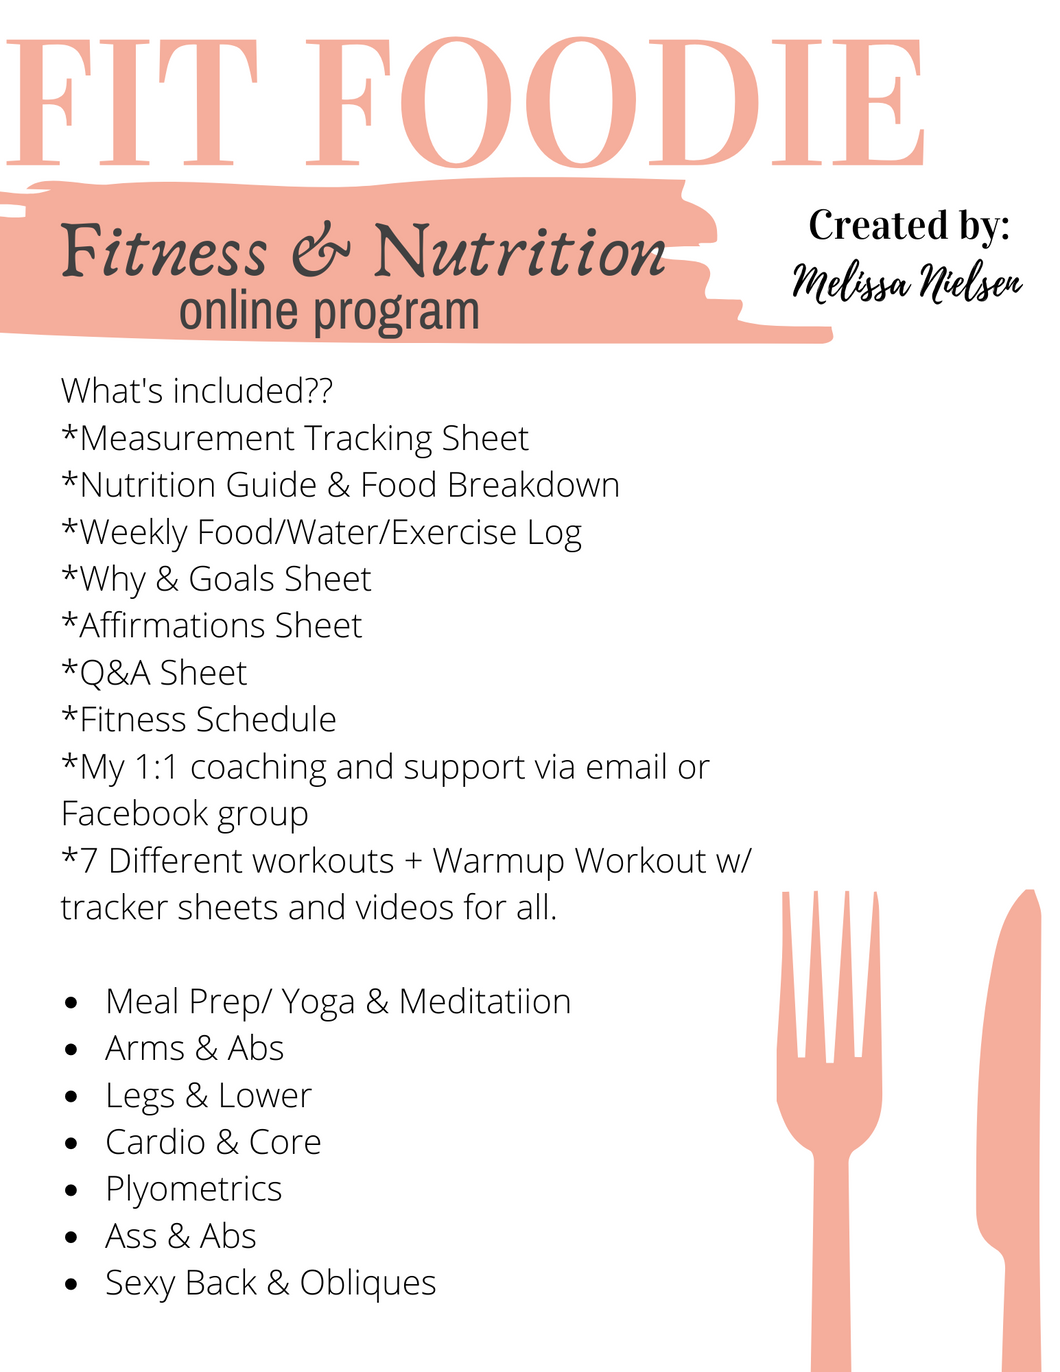 4 Week Online Fitness and Nutrition Program